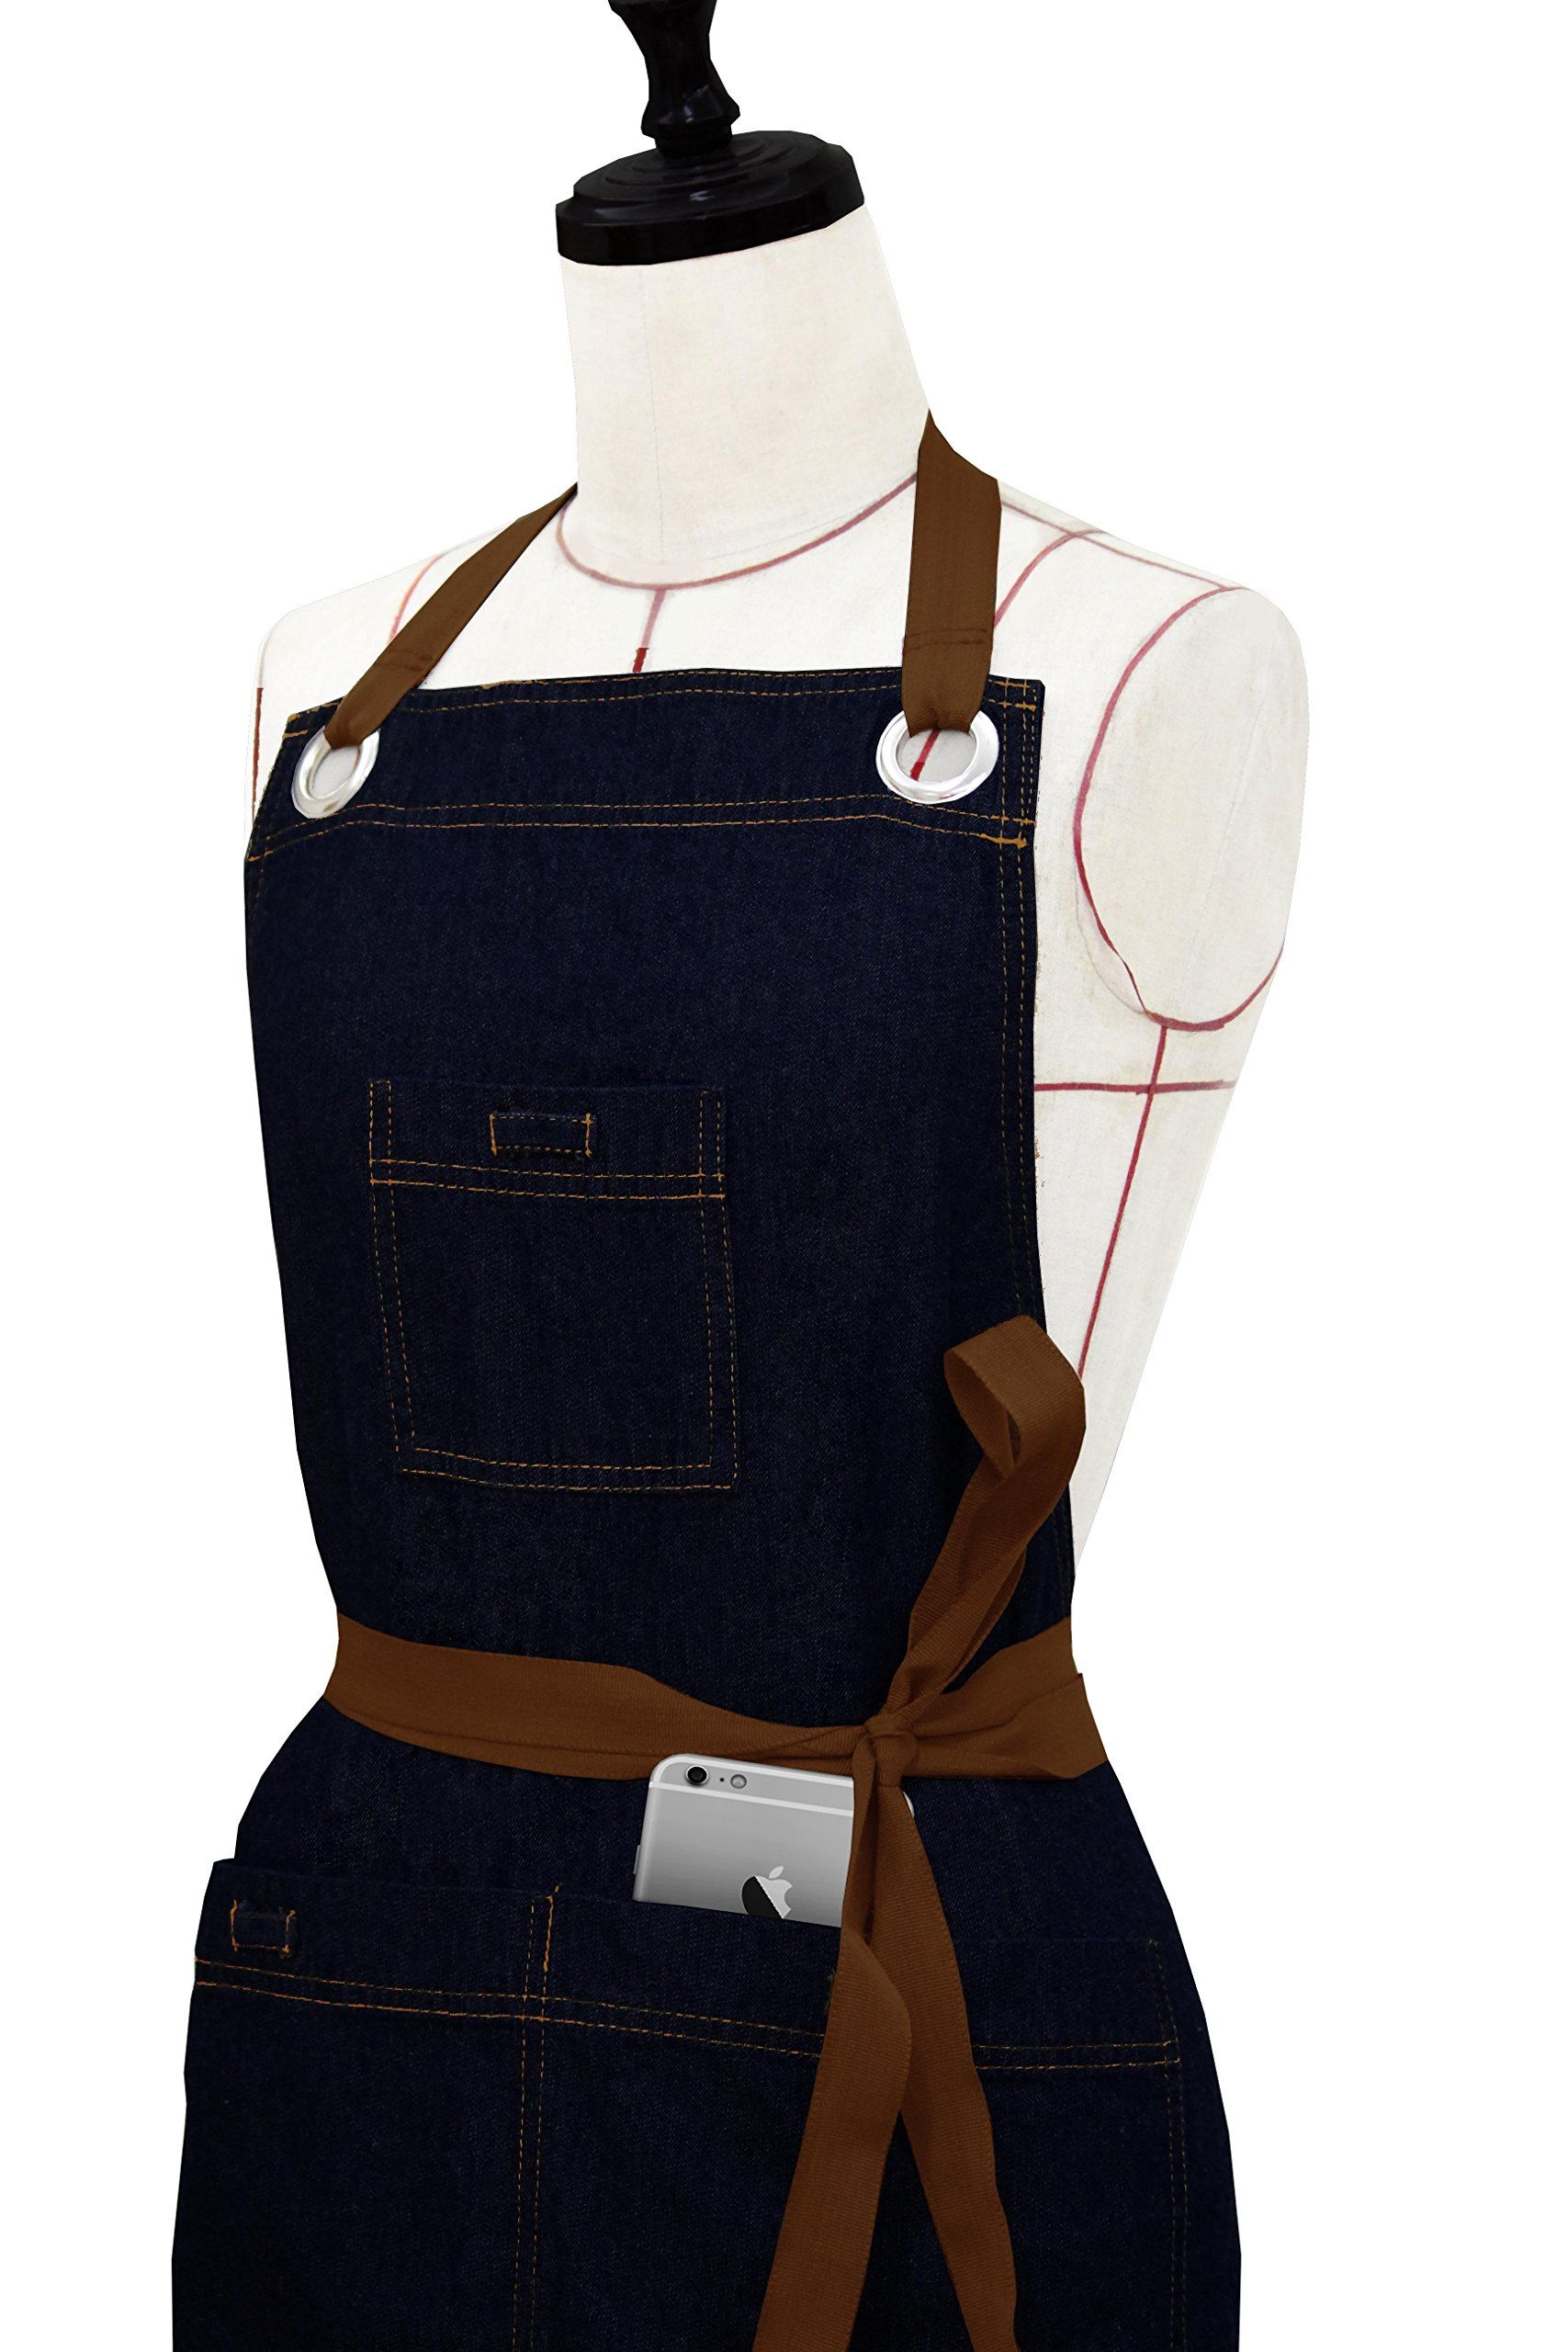 Milano Home Denim Professional Apron for Men & Women with Adjustable Neck Towel Holder & Patch Pockets Perfect for Cooking BBQ Baking Full in Length (Denim & Brown) by Milano Home USA